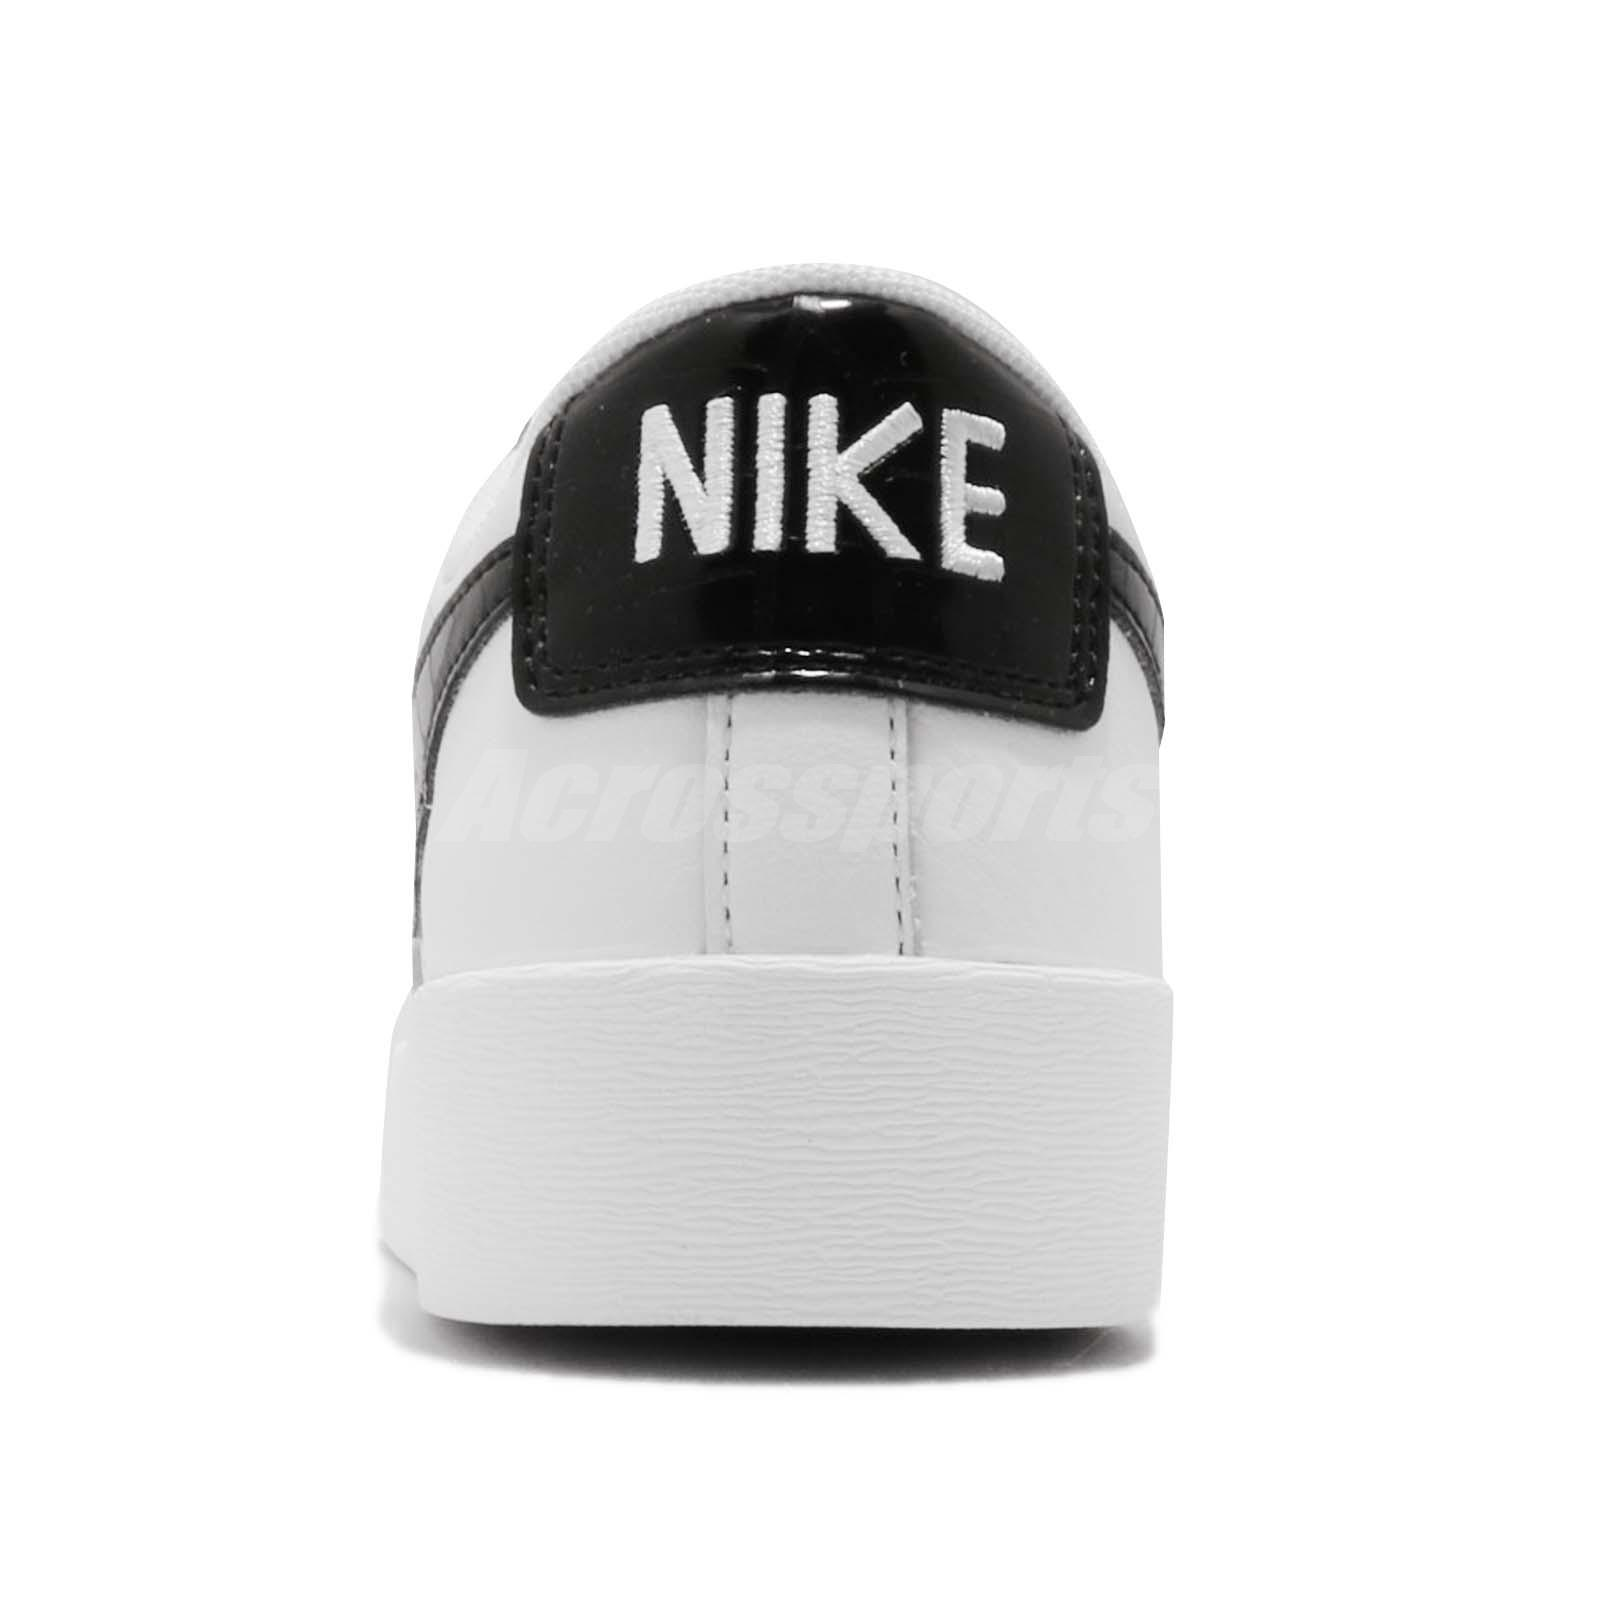 e69e4a15a510 Nike Wmns Blazer Low White Black Women Casual Lifestyle Shoes ...